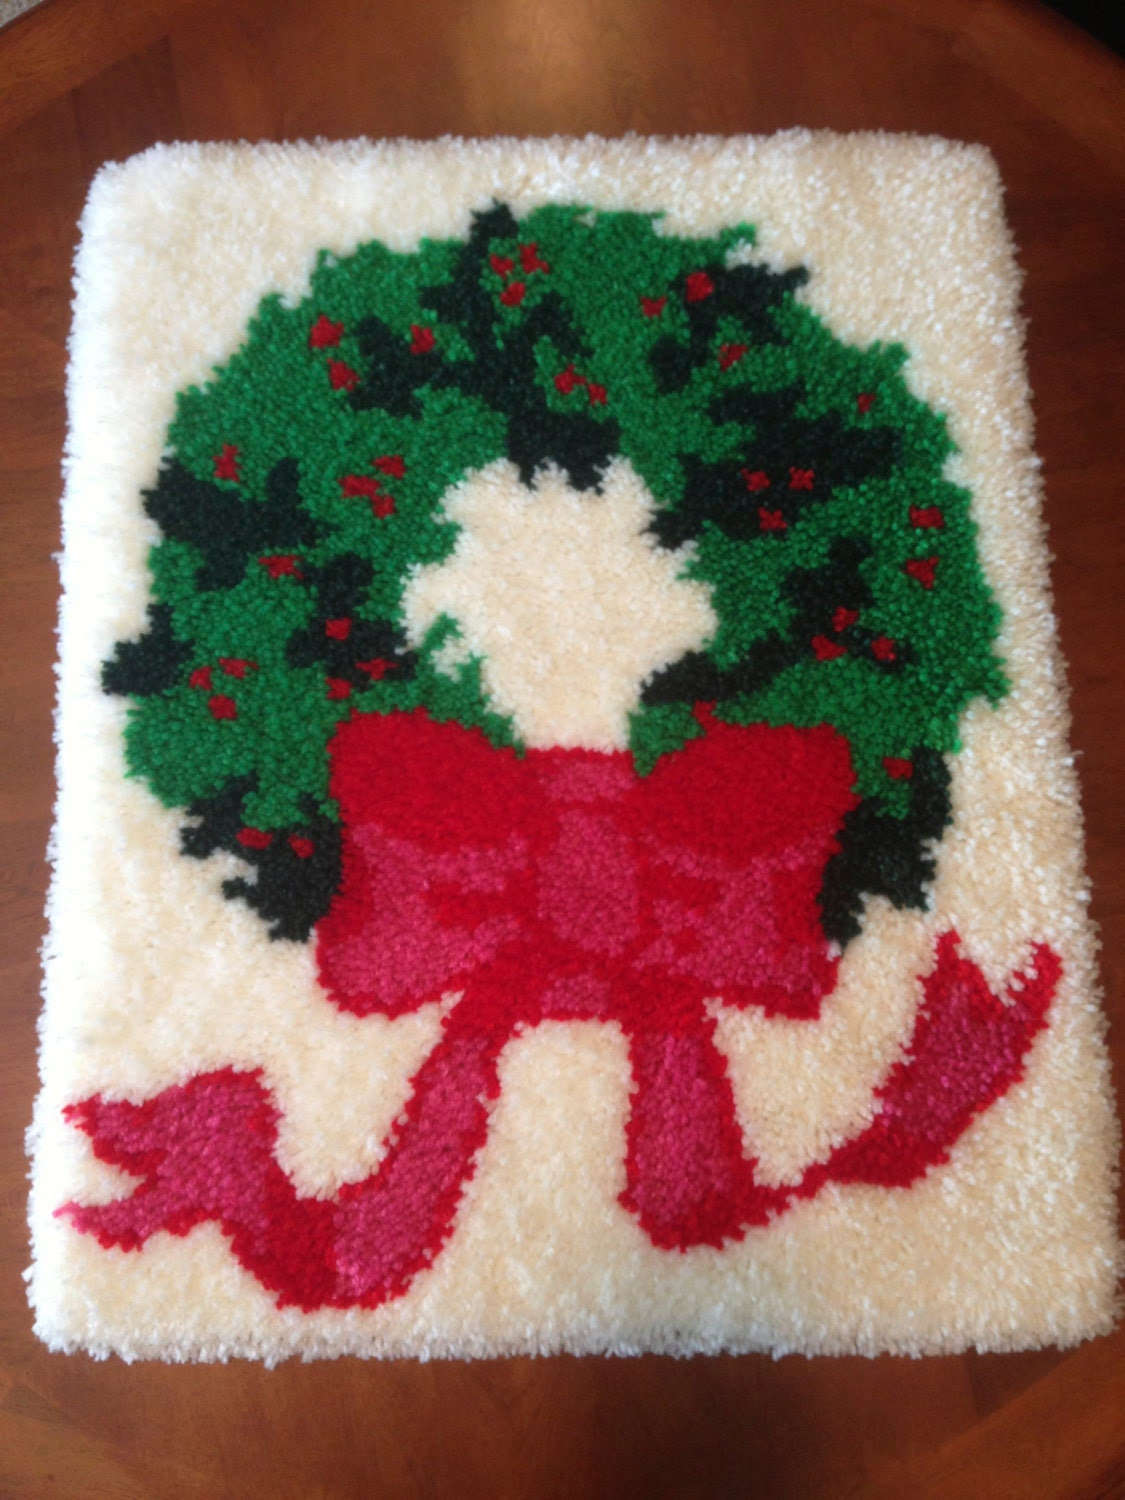 Popular items for latch hook rug on Etsy